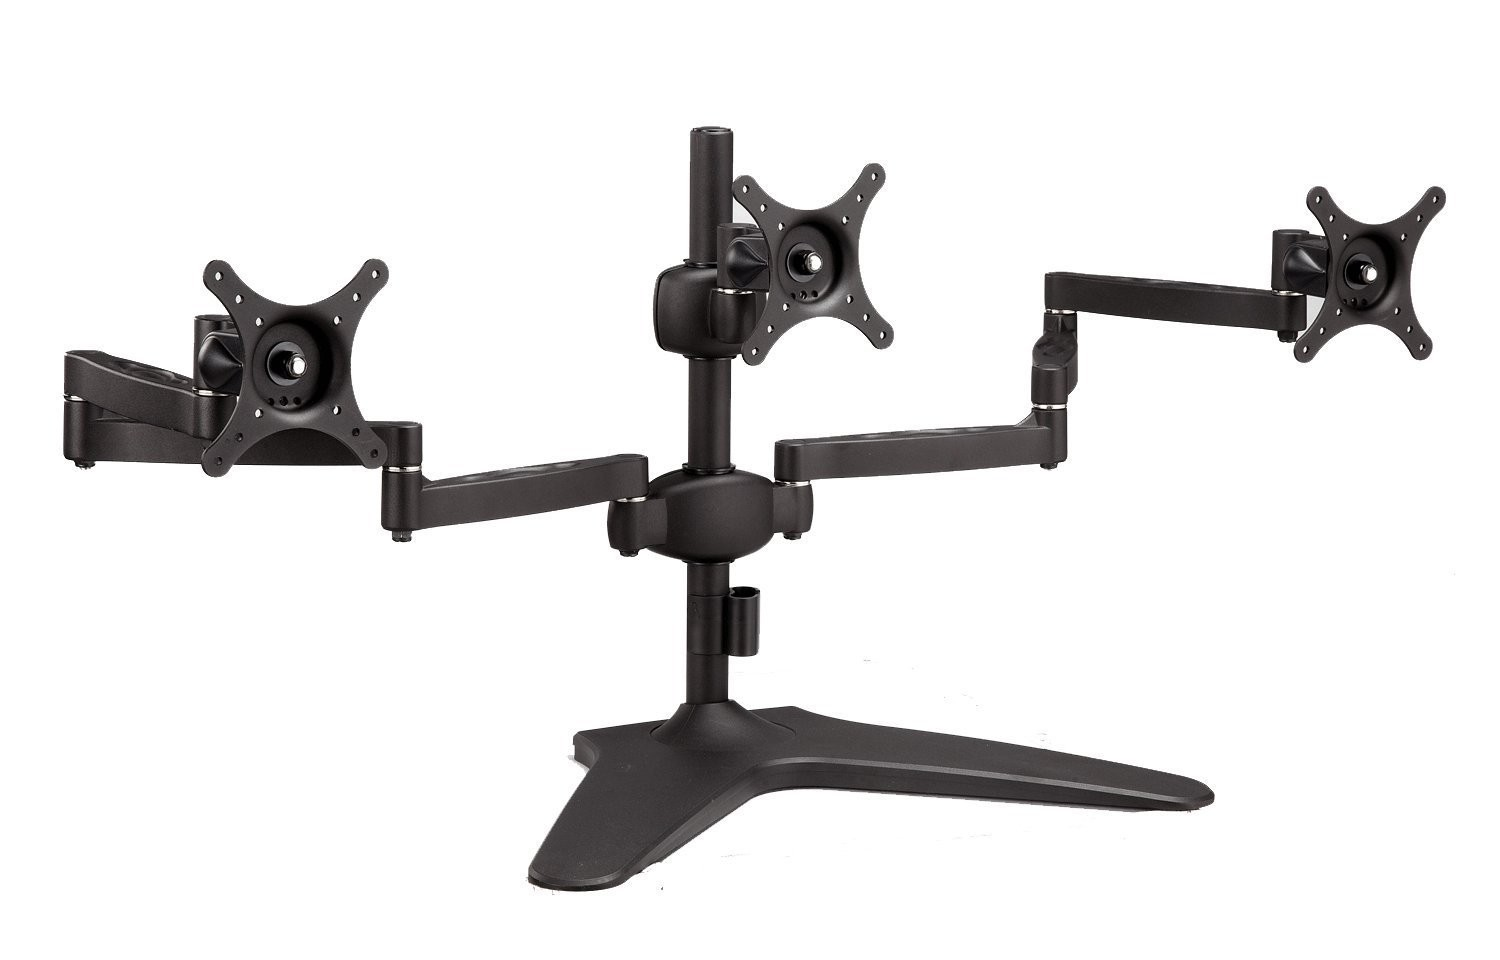 Elitech Aluminum Alloy Triple Monitor Stand Table Desk Mounts for Three LCD Monitors, Free Standing, Fully Adjustable Double Arms